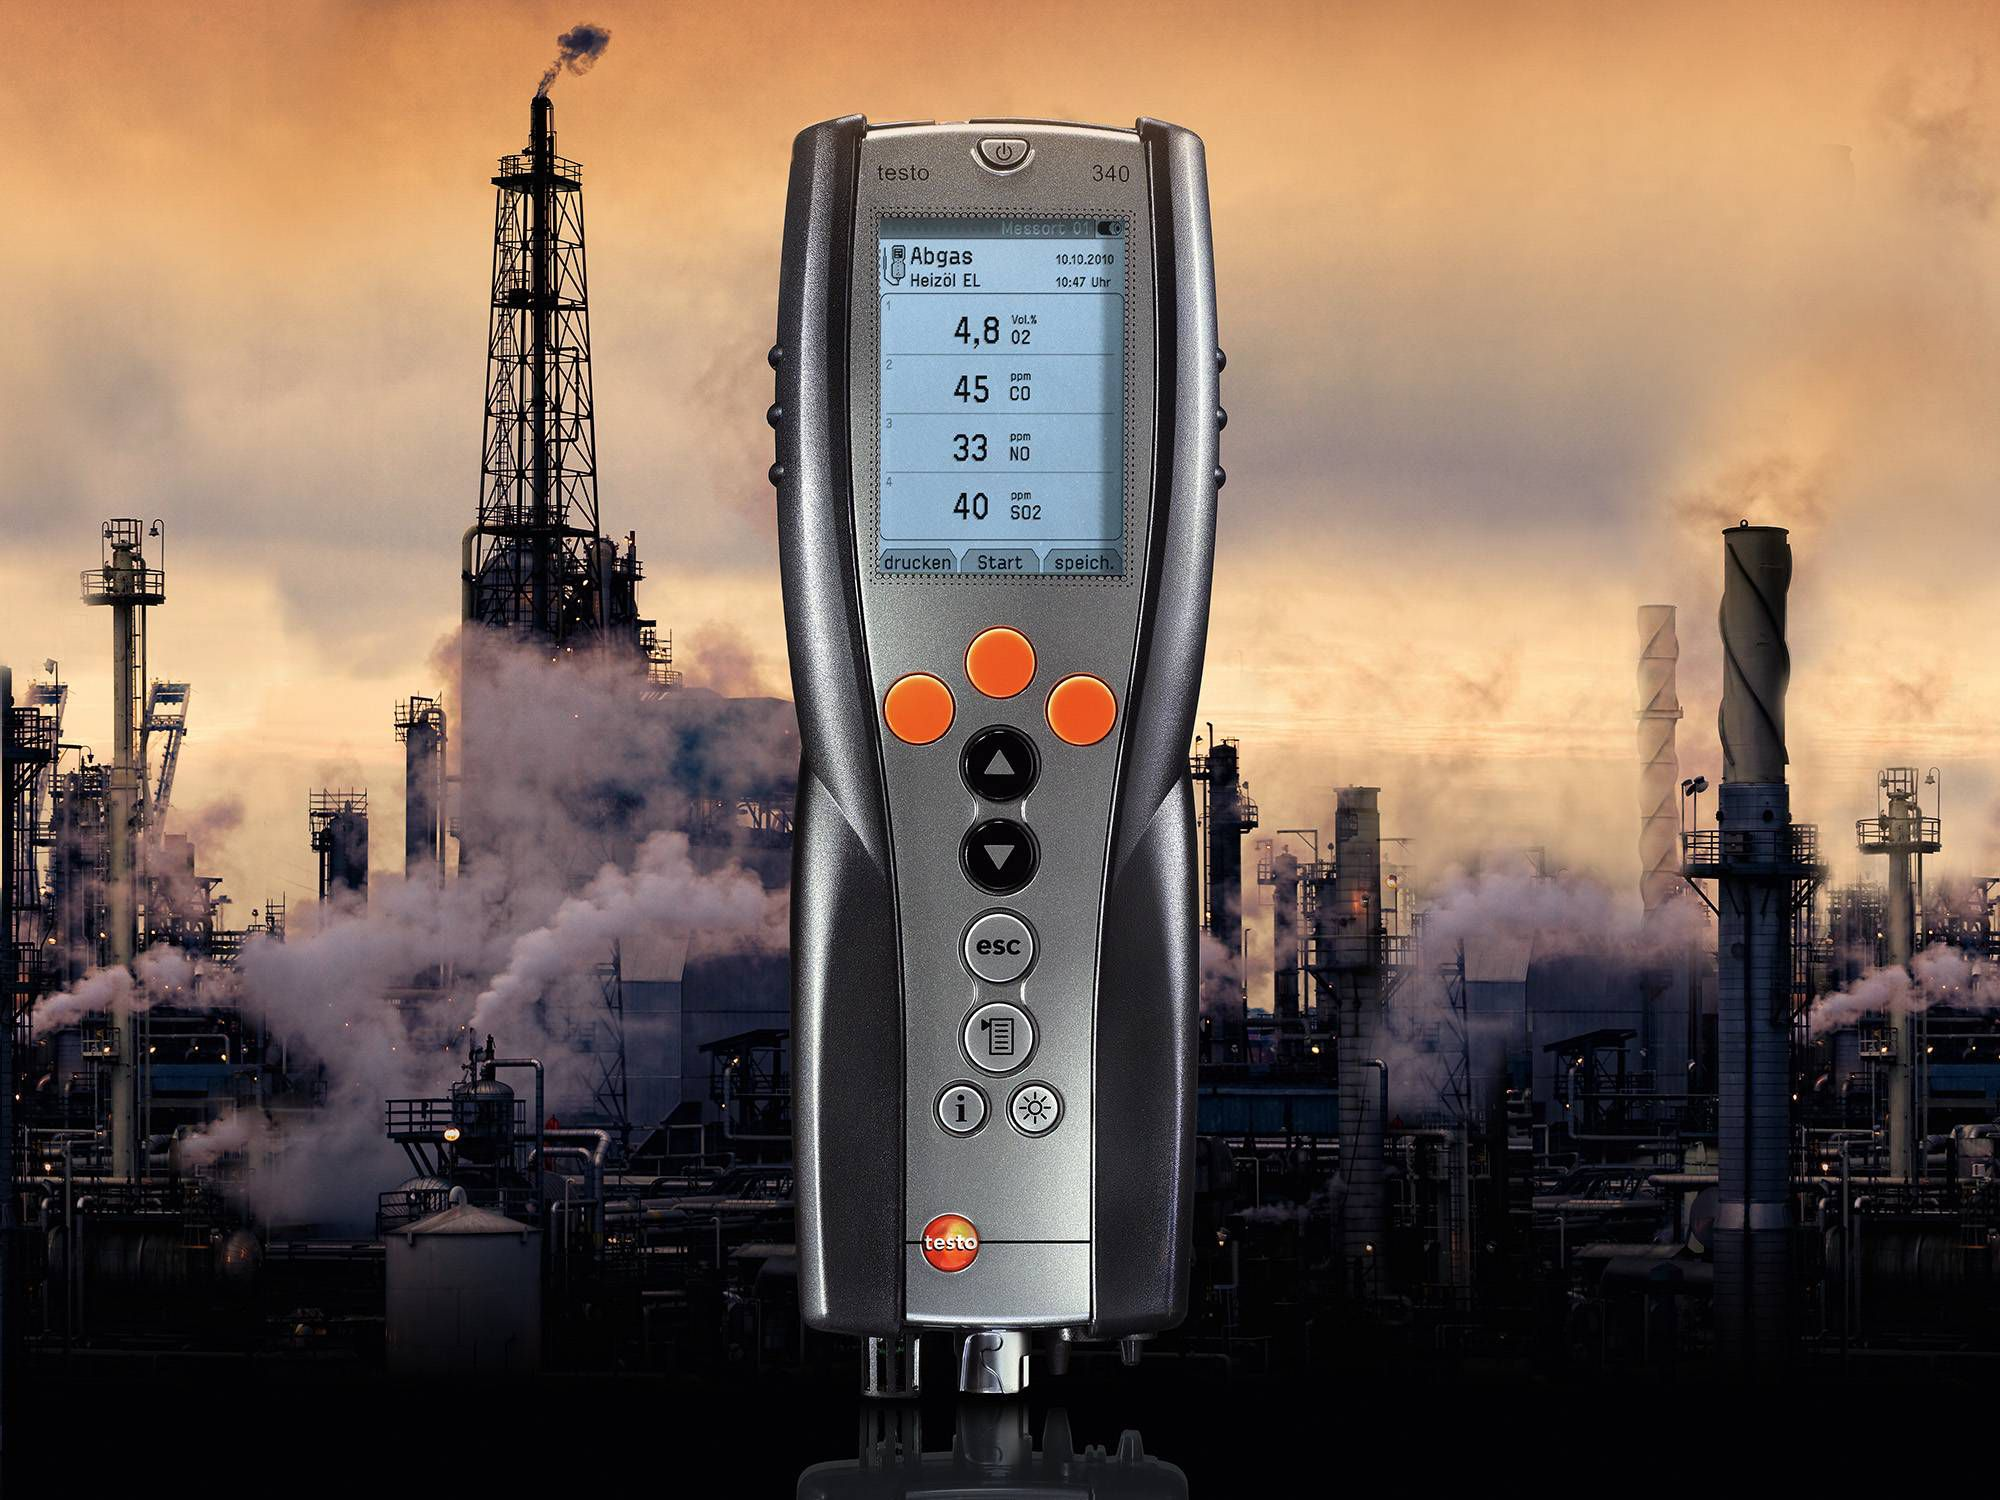 The emission analyzer testo 340